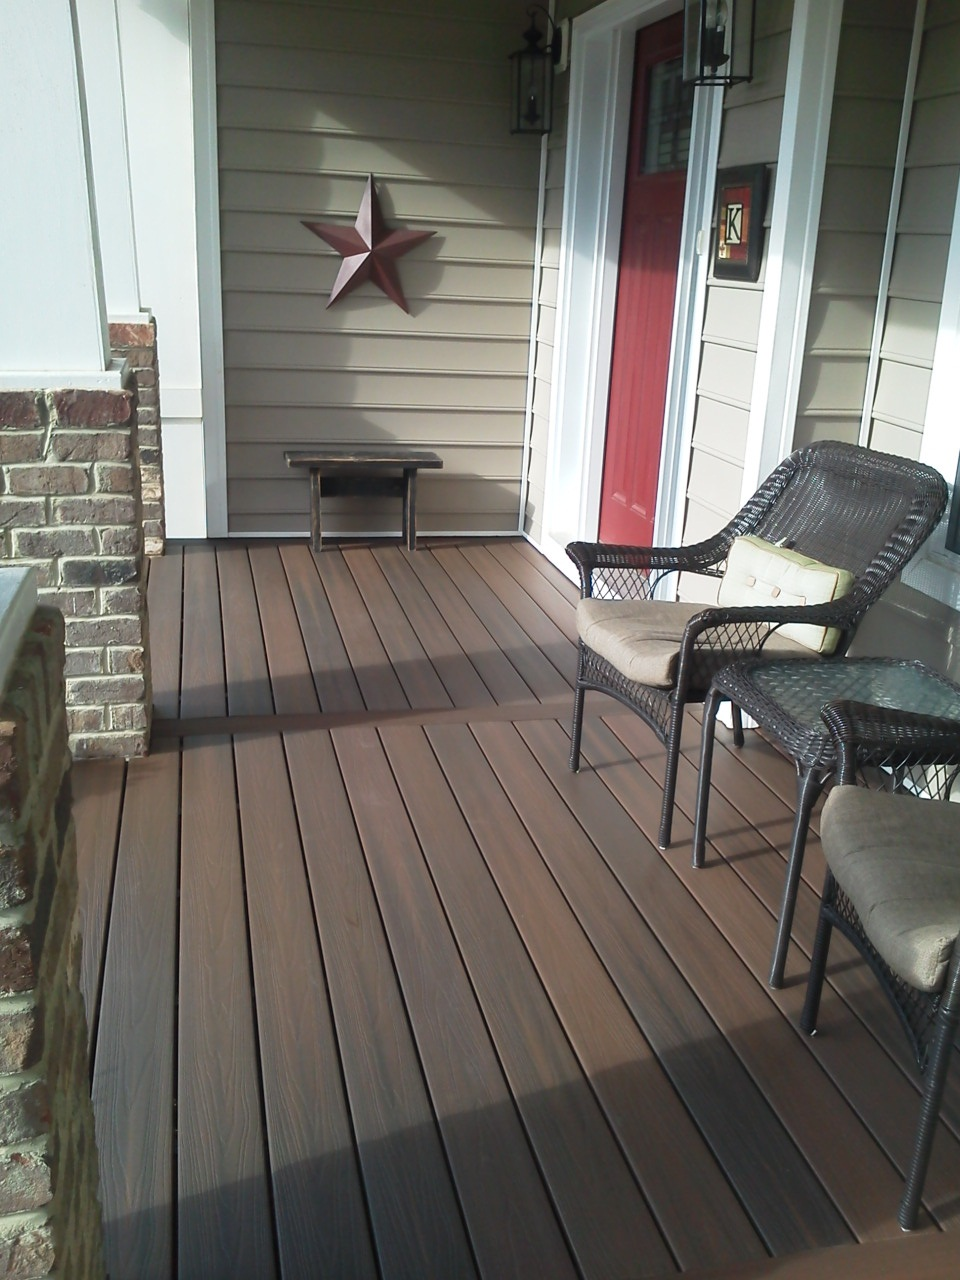 Decking Materials How To Clean Trex Decking Material